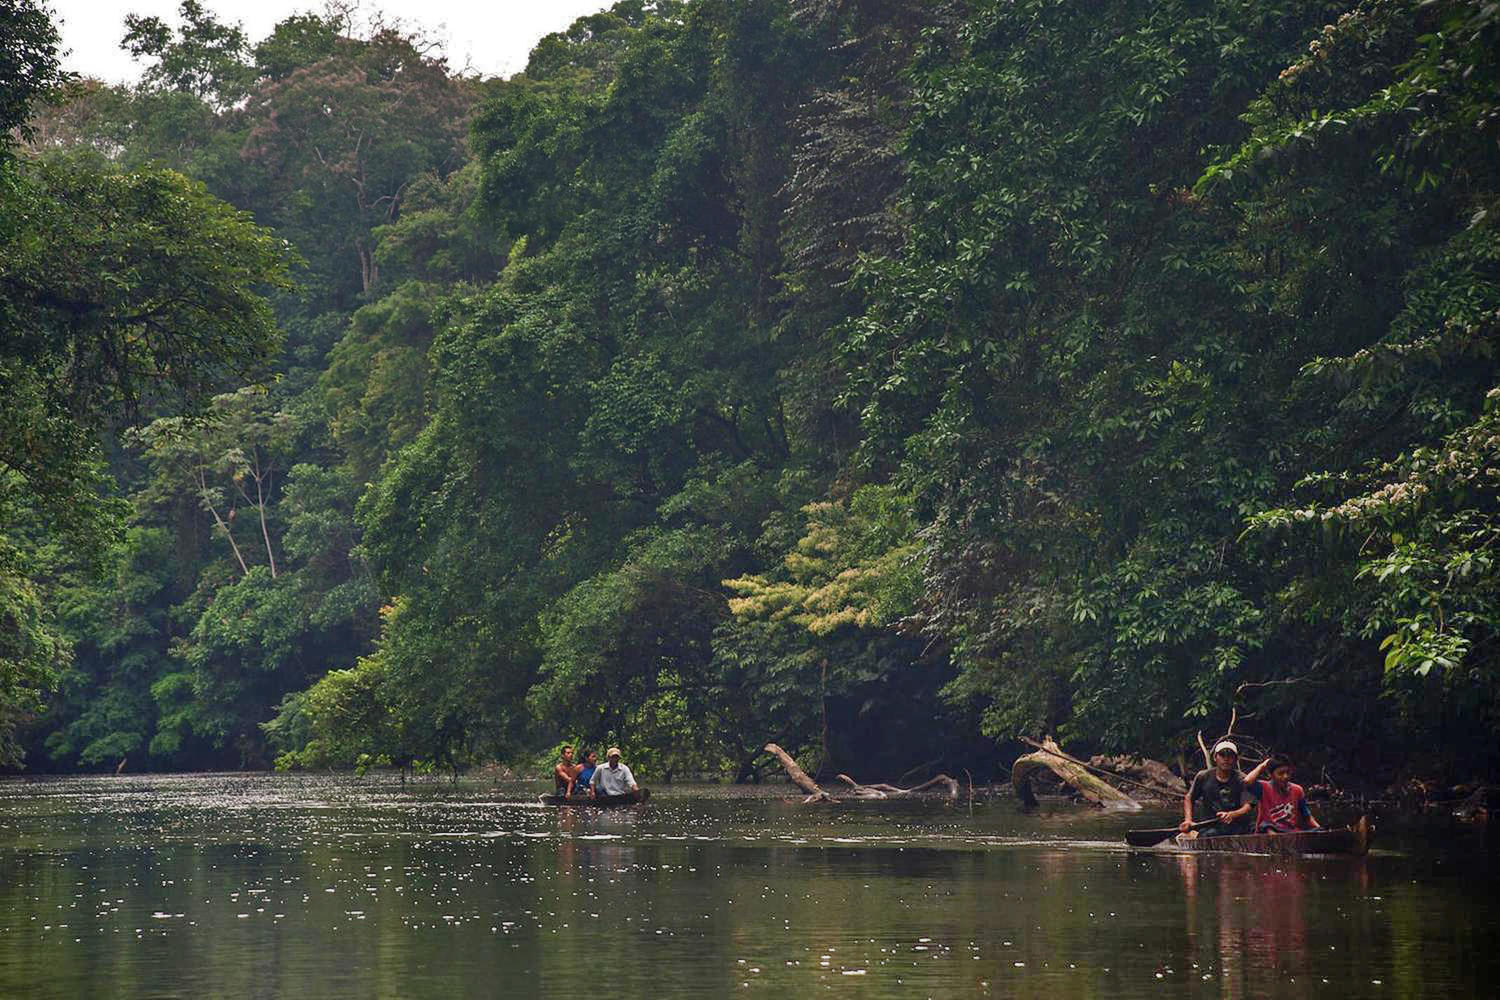 Dugout canoes inside the Indio Maiz Natural Reserve in Nicaragua